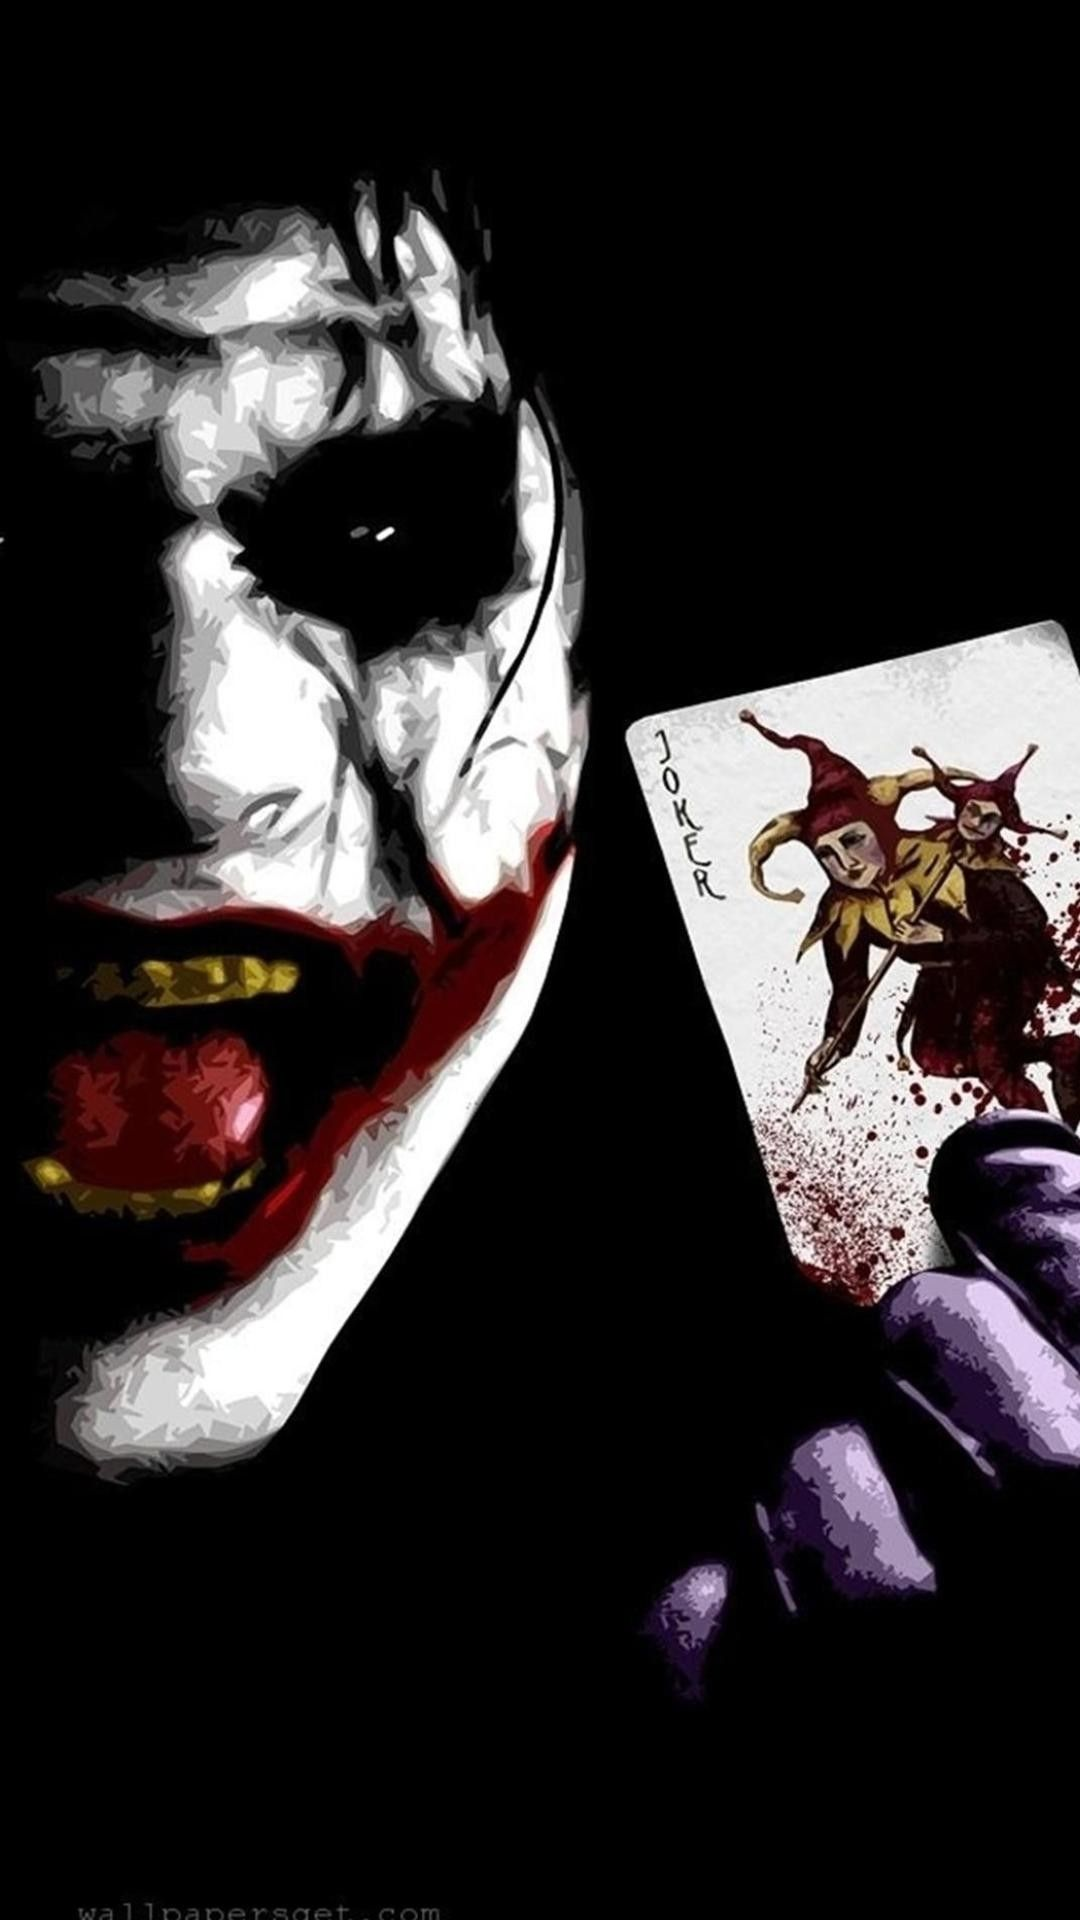 Cool Joker Hd Wallpaper For Iphone 7 Plus Images In 2020 Joker Hd Wallpaper Joker Wallpapers Joker